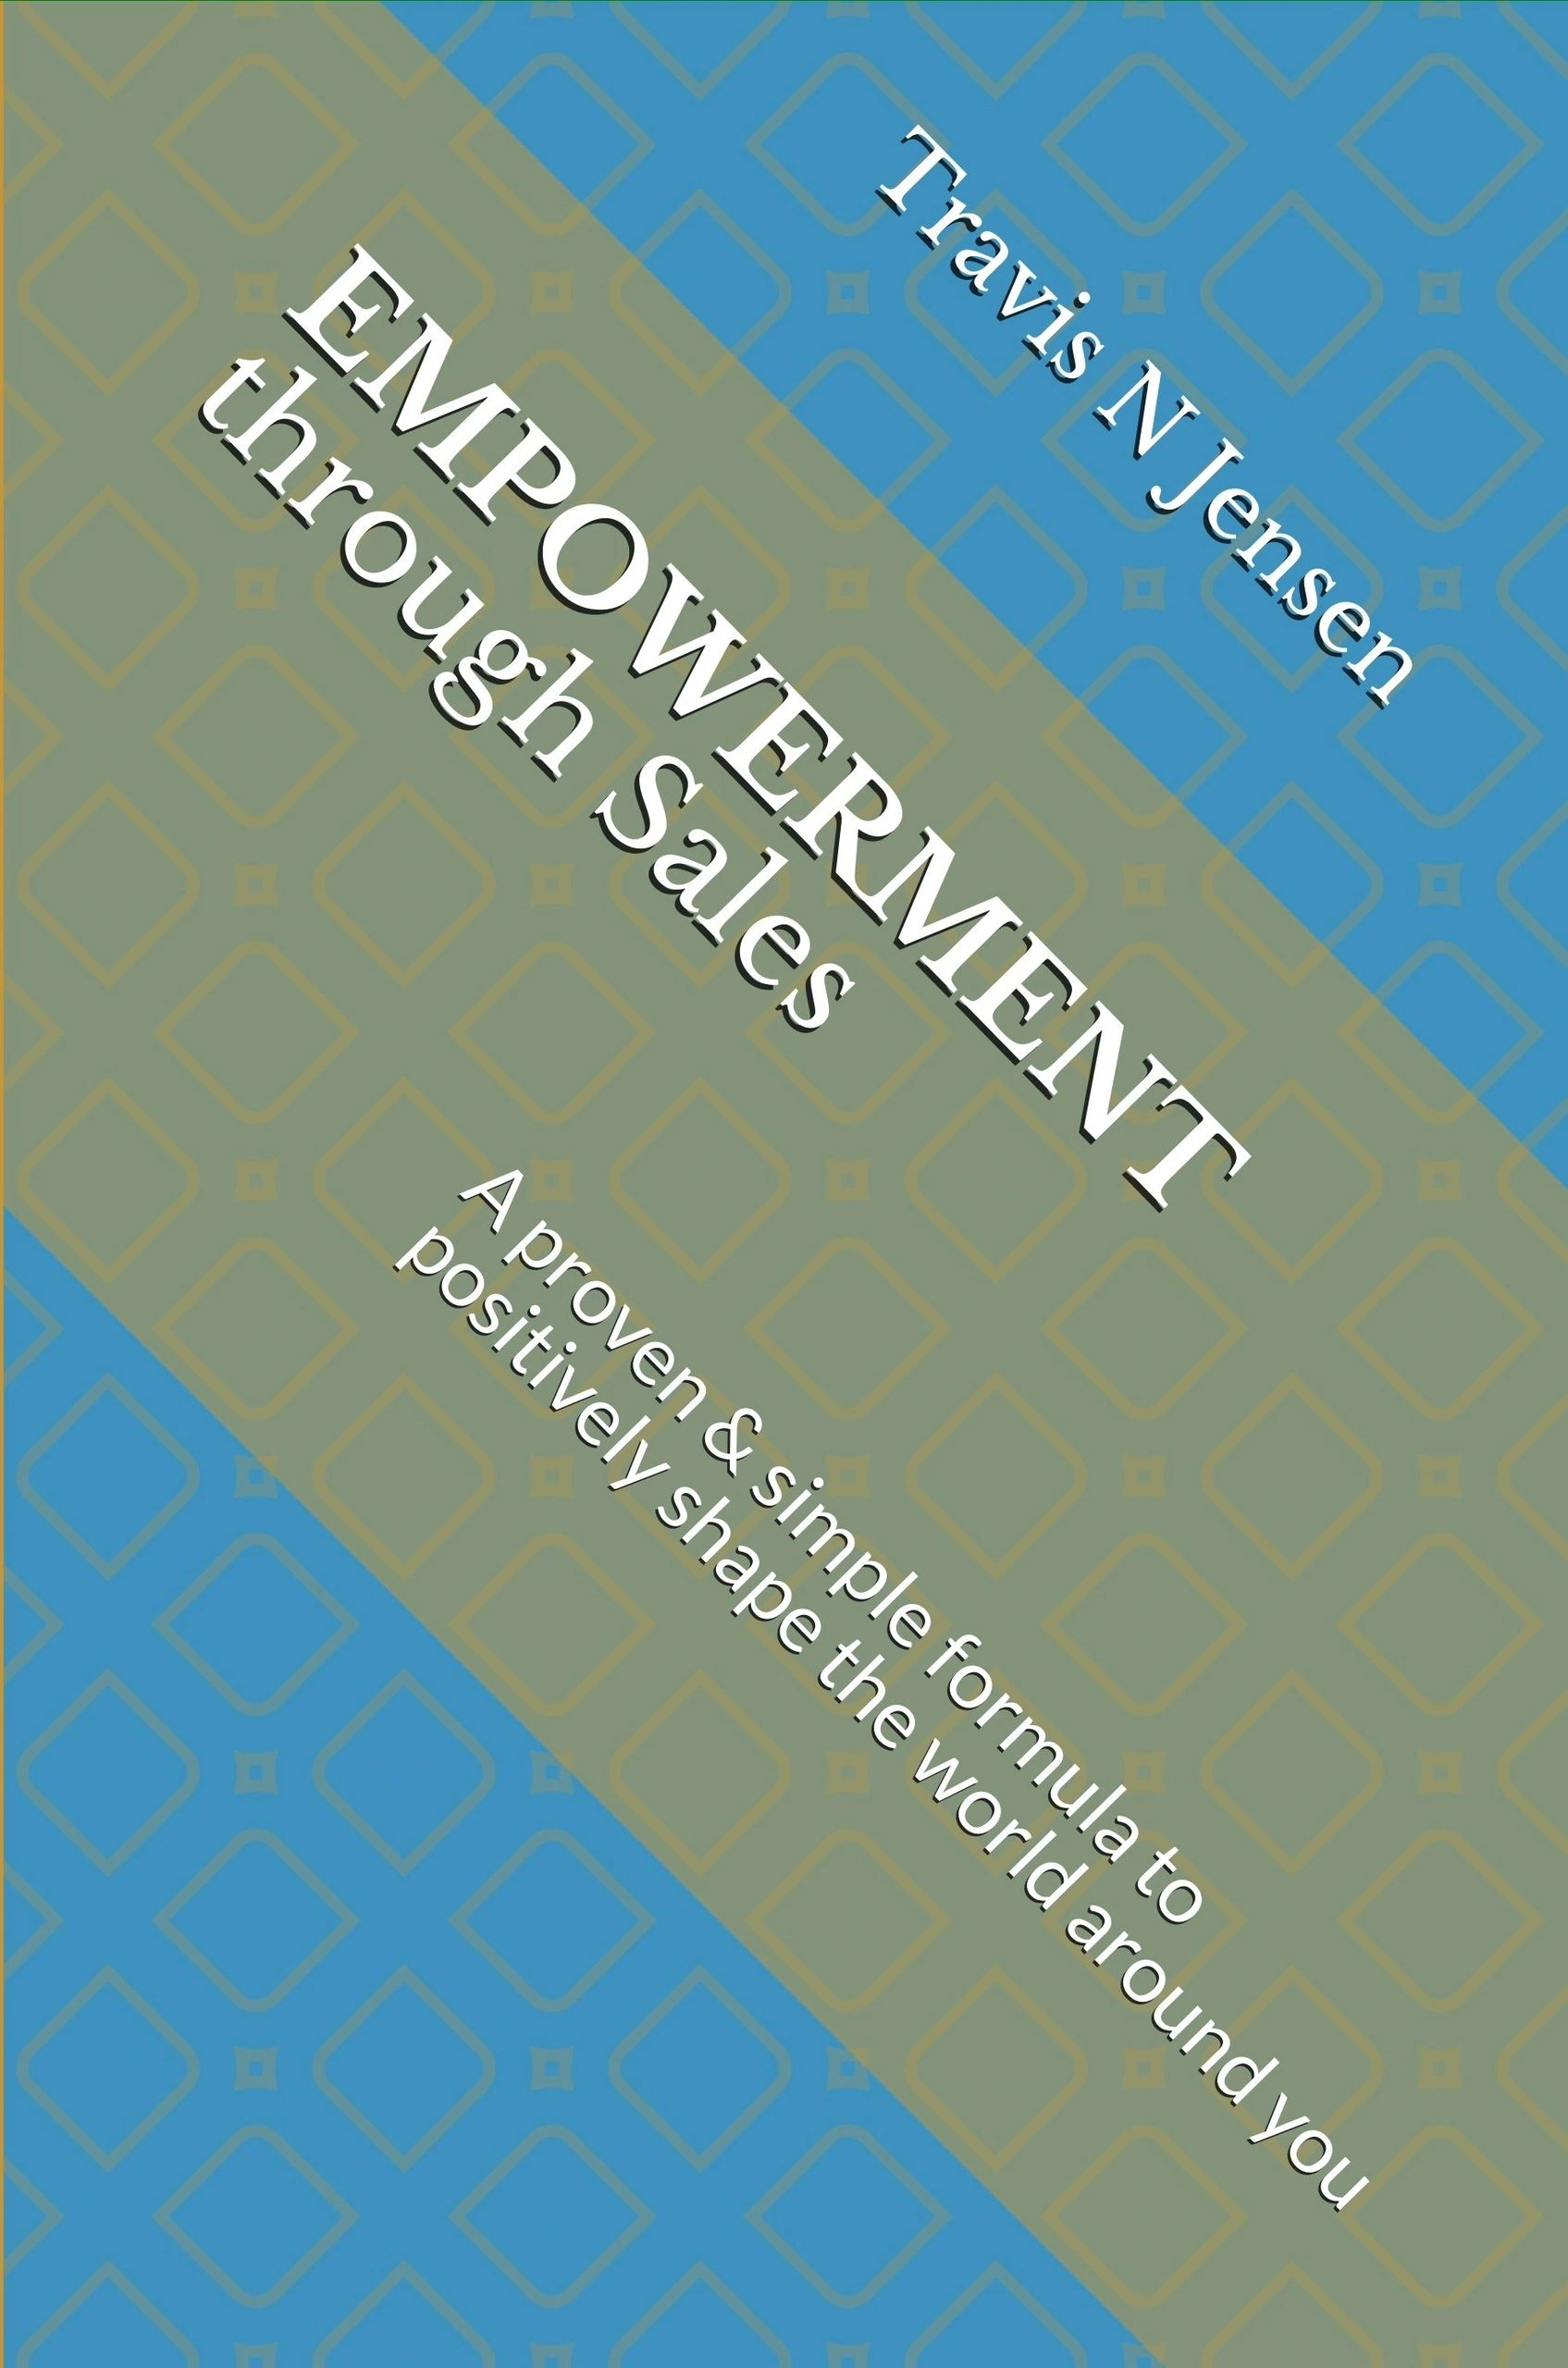 Empowerment through Sales, by Travis N Jensen